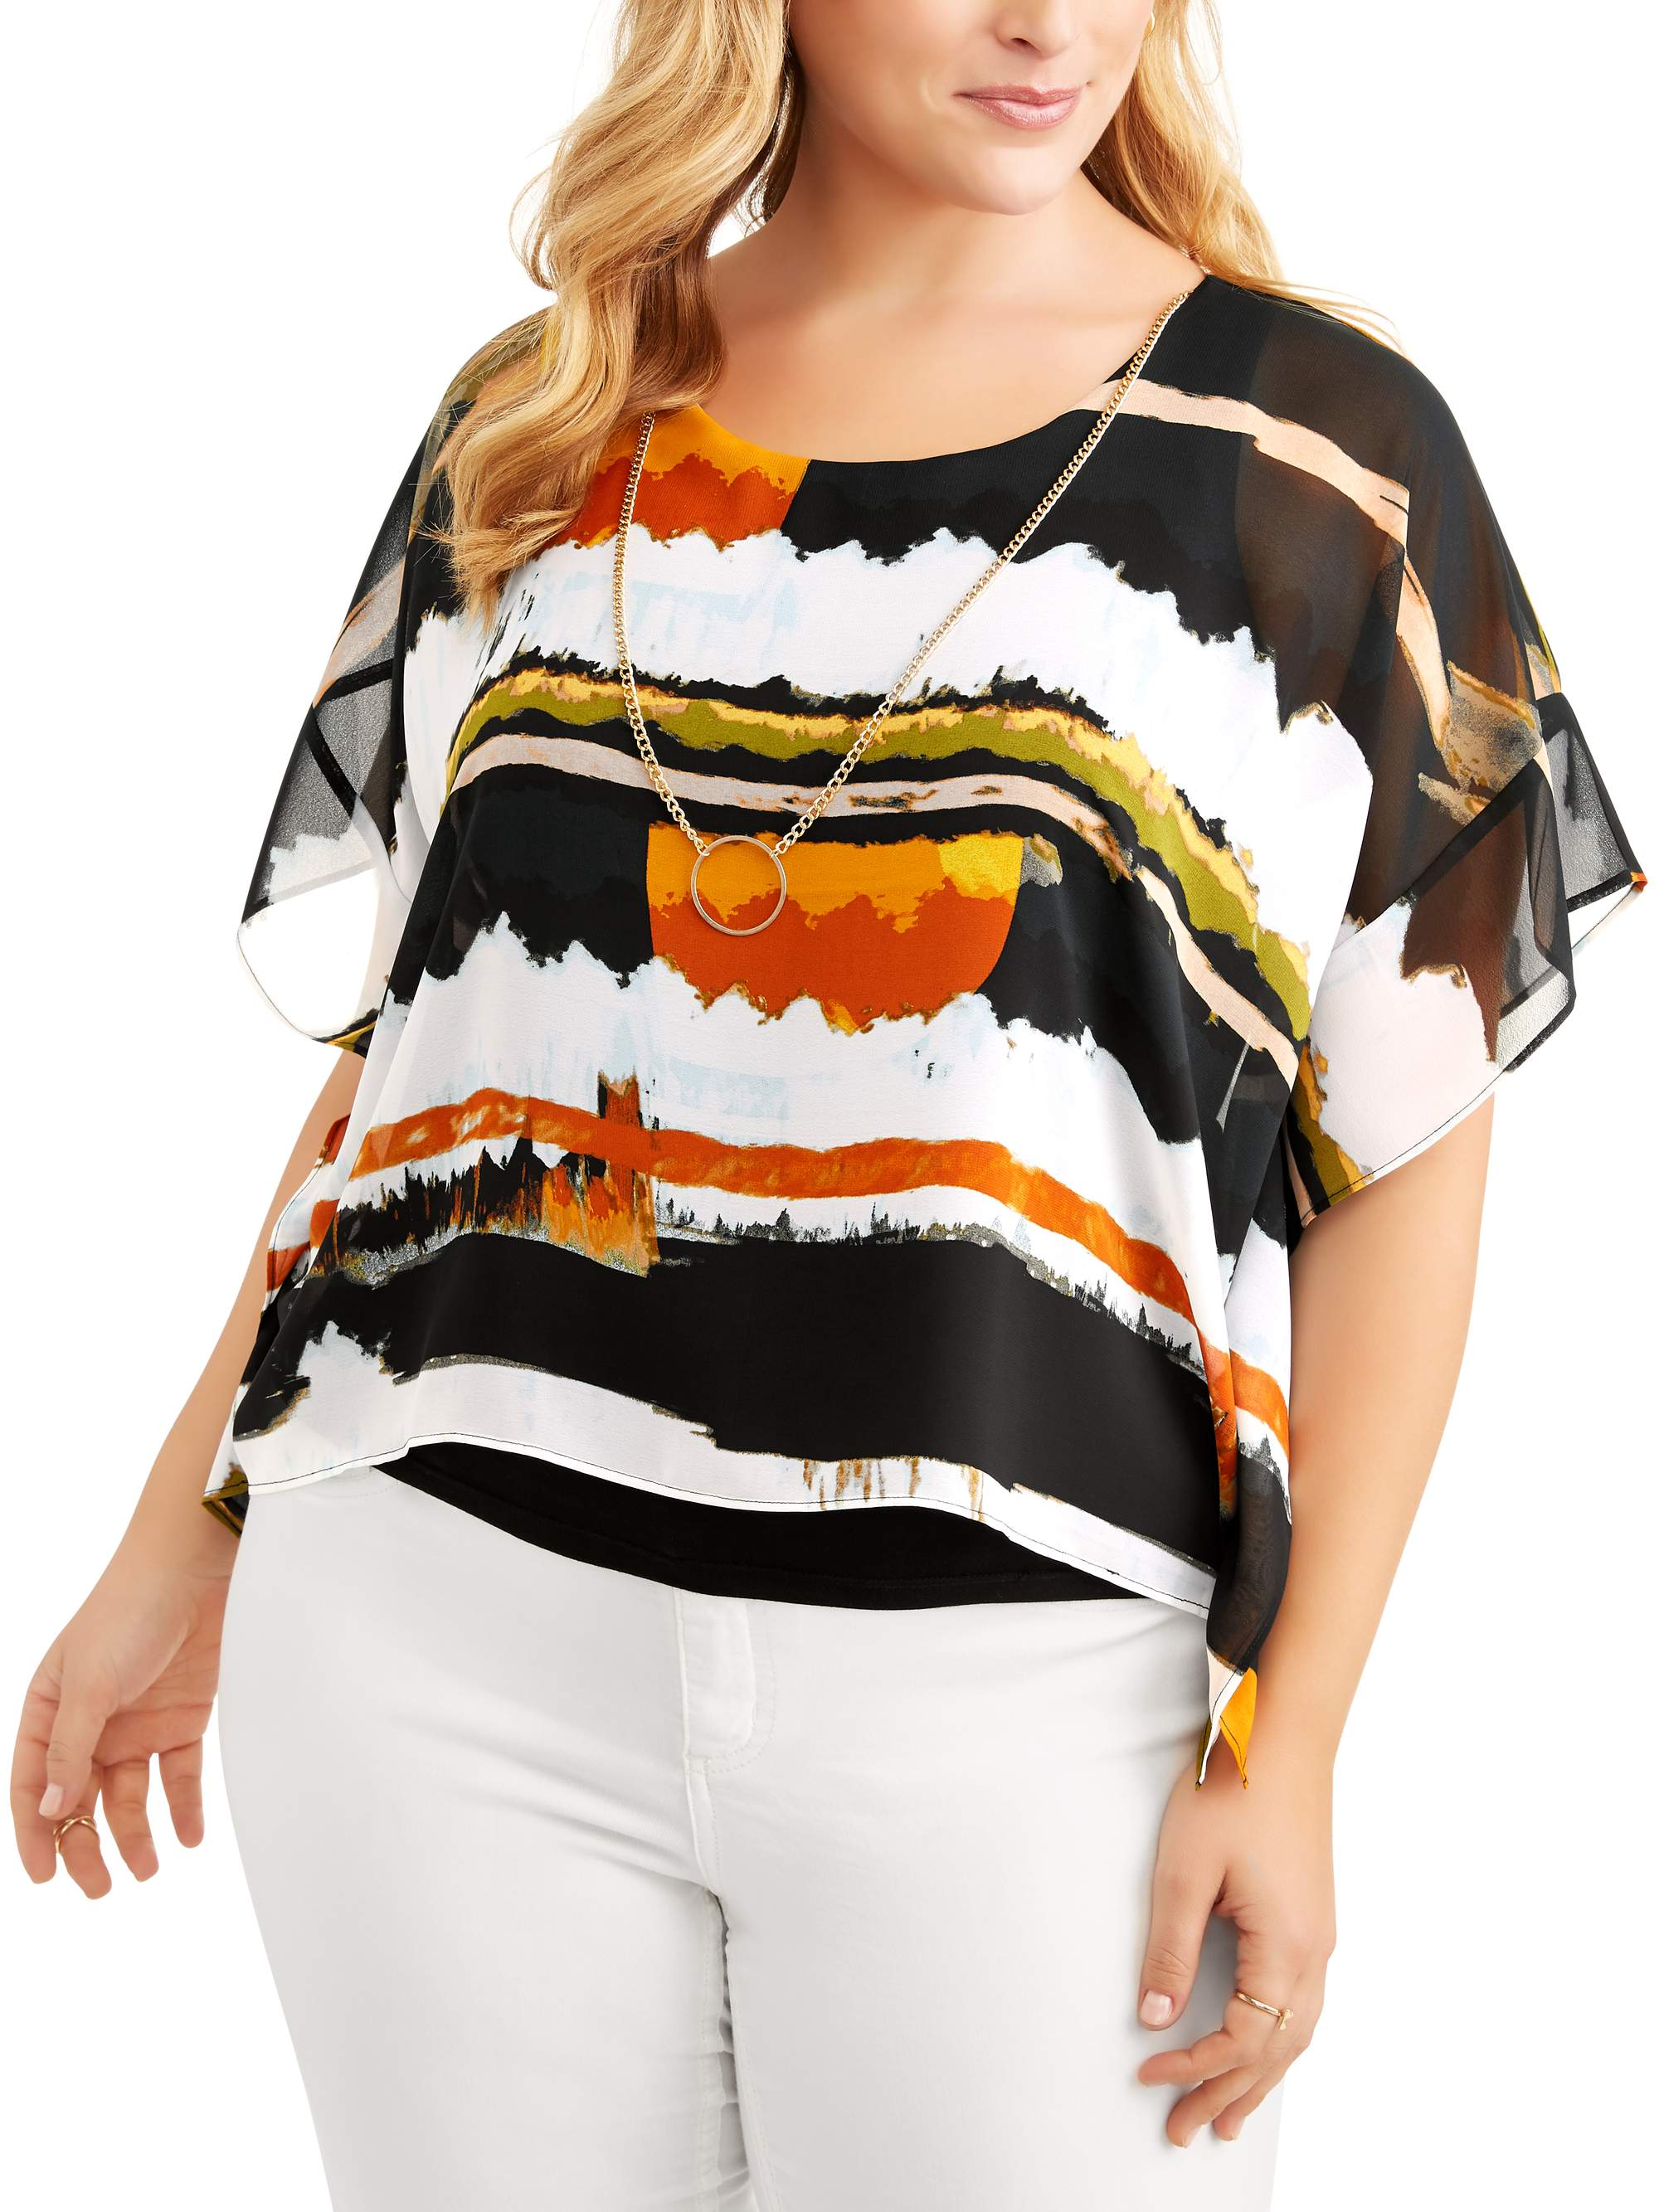 Women's Dolman Sleeve Top with Necklace